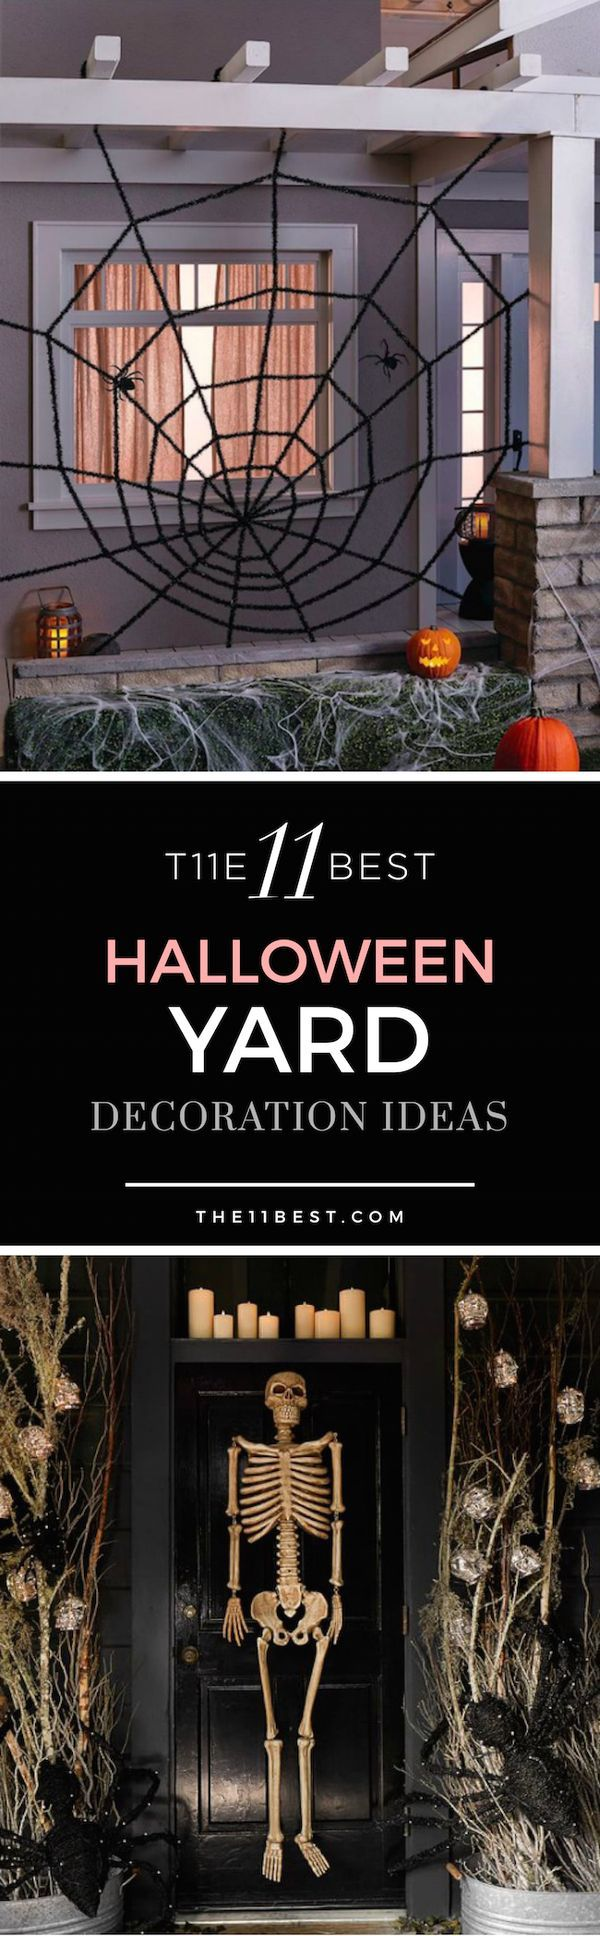 the 11 best halloween yard decoration ideas - Halloween Yard Decorating Ideas